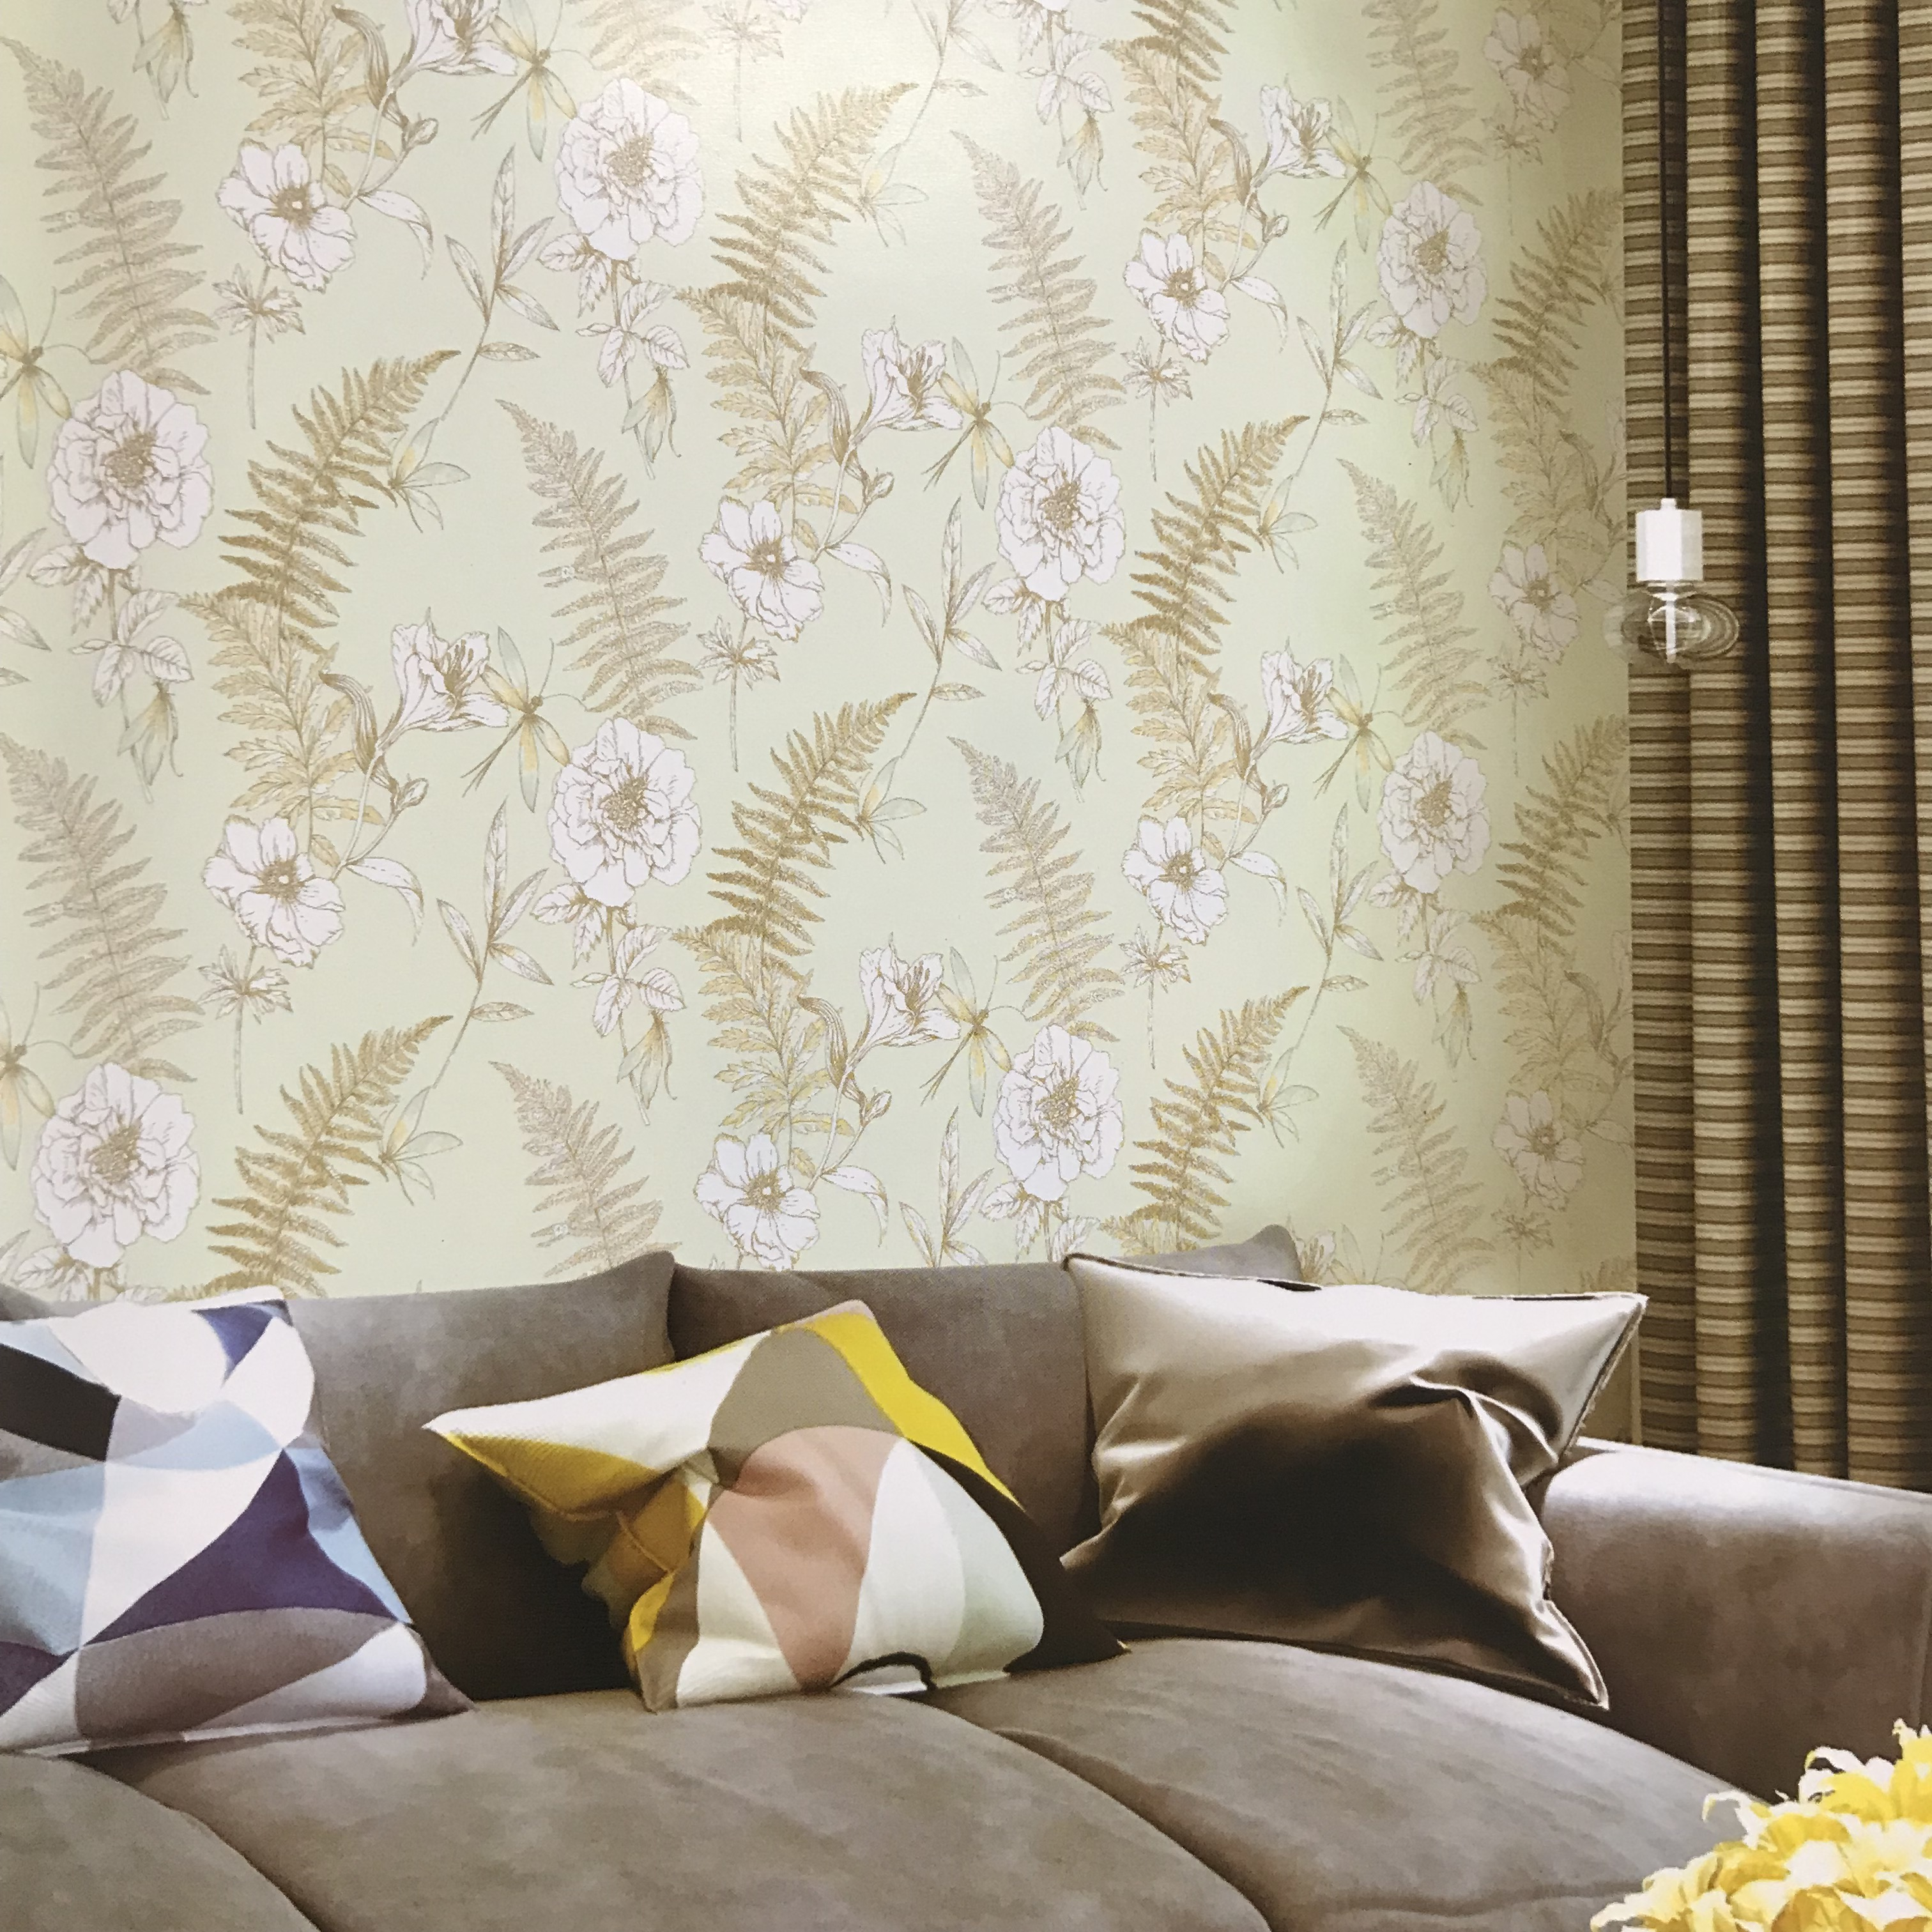 Hot sale printable natural leaf wallpaper designs for home improvement wall coating bedroom living room TV sofa background in Wallpapers from Home Improvement